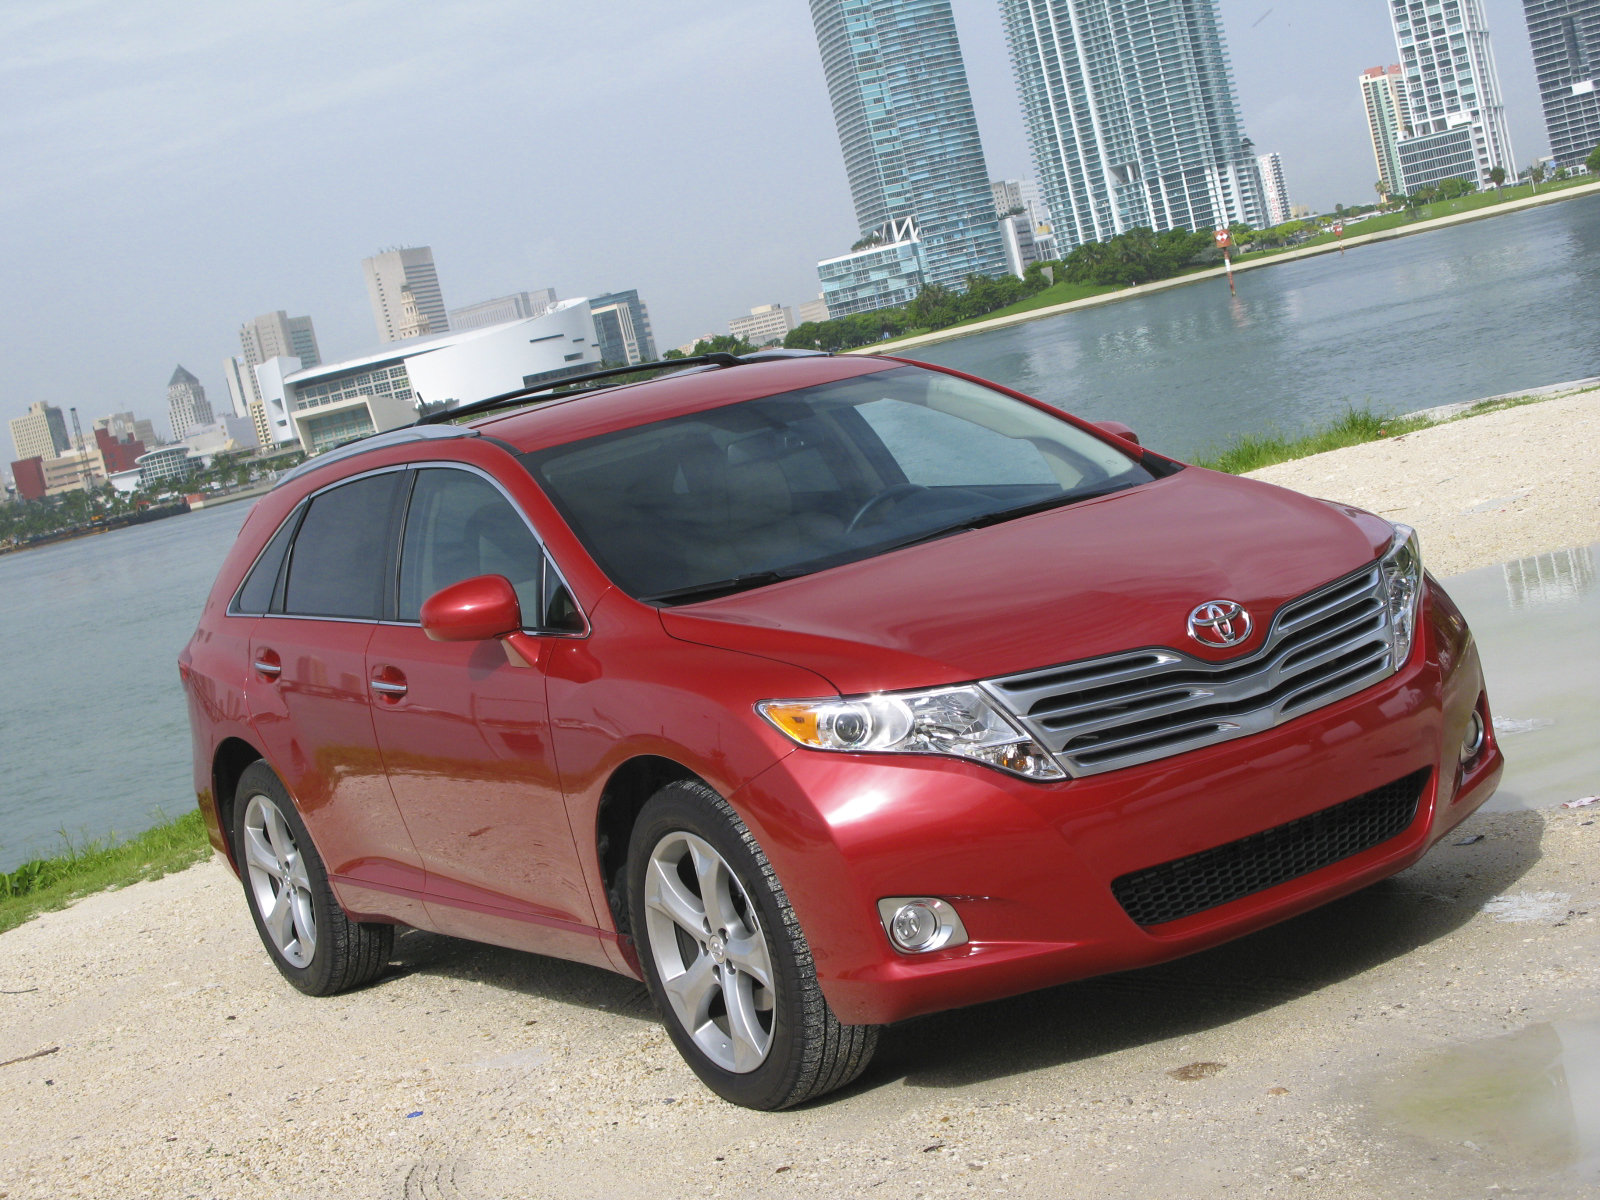 2009 toyota venza review gallery top speed. Black Bedroom Furniture Sets. Home Design Ideas